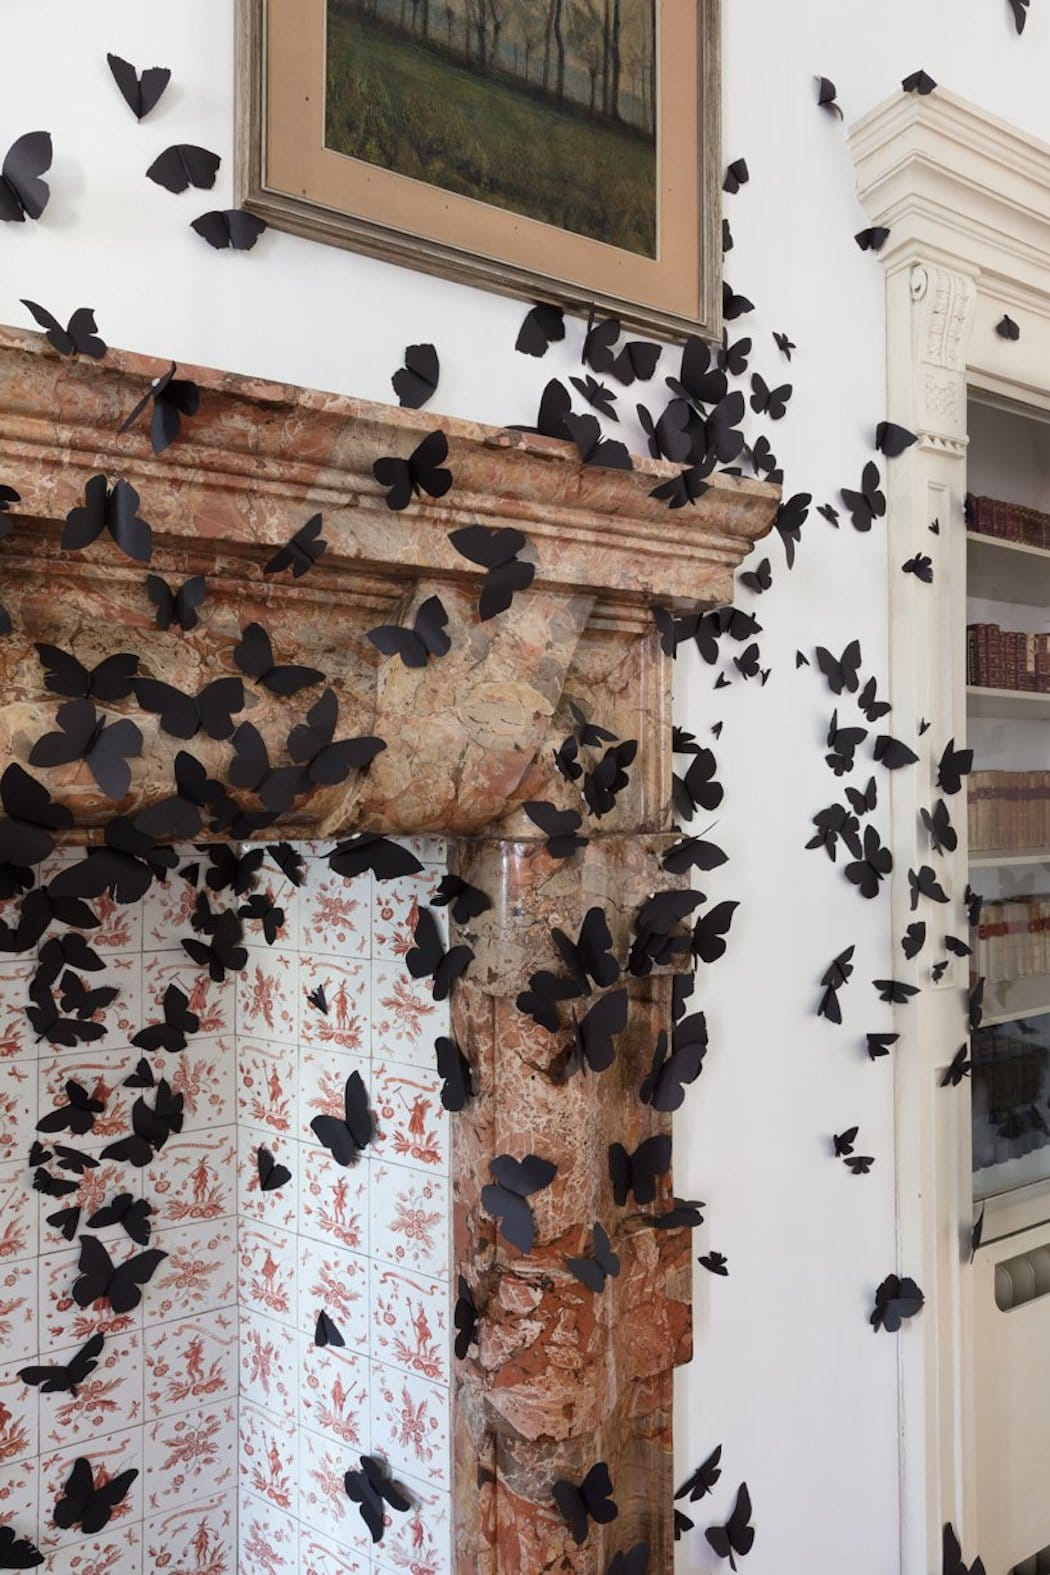 Black Butterfly Installation